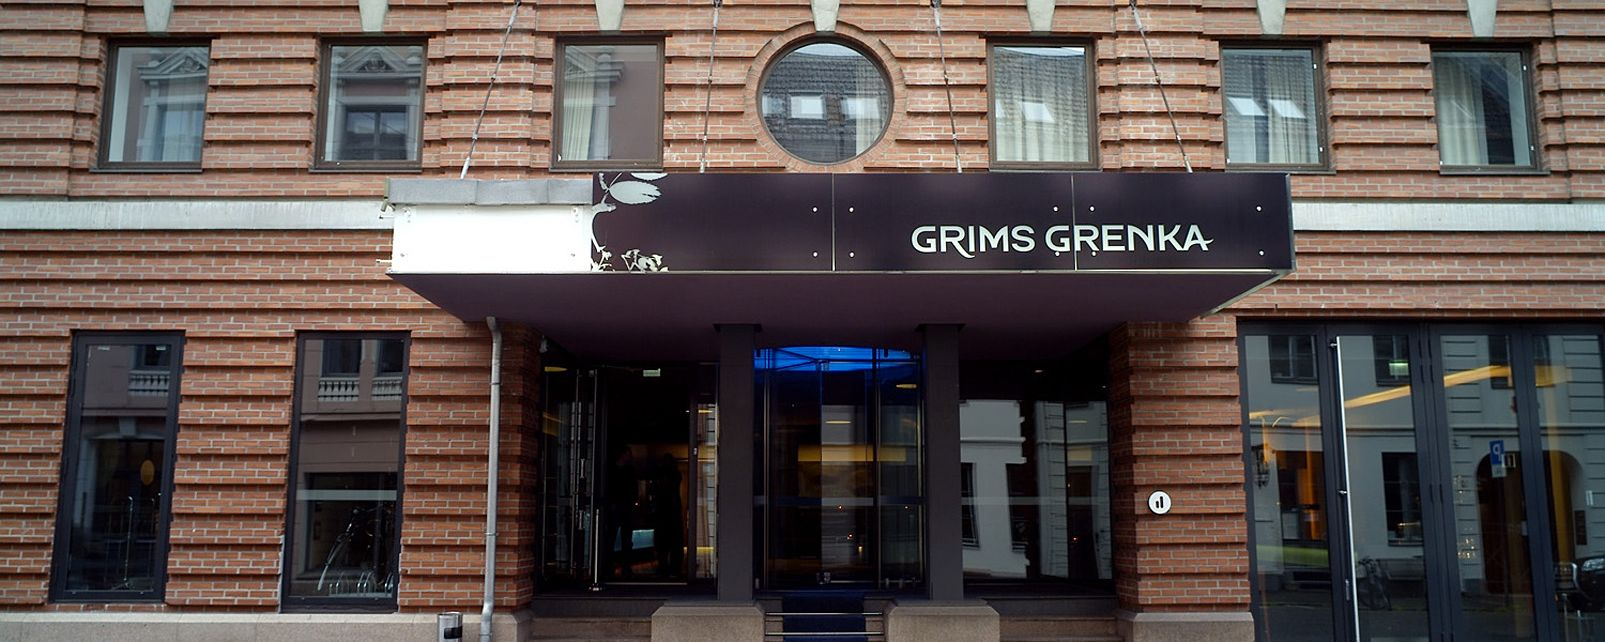 Hotel First Hotel Grims Grenka